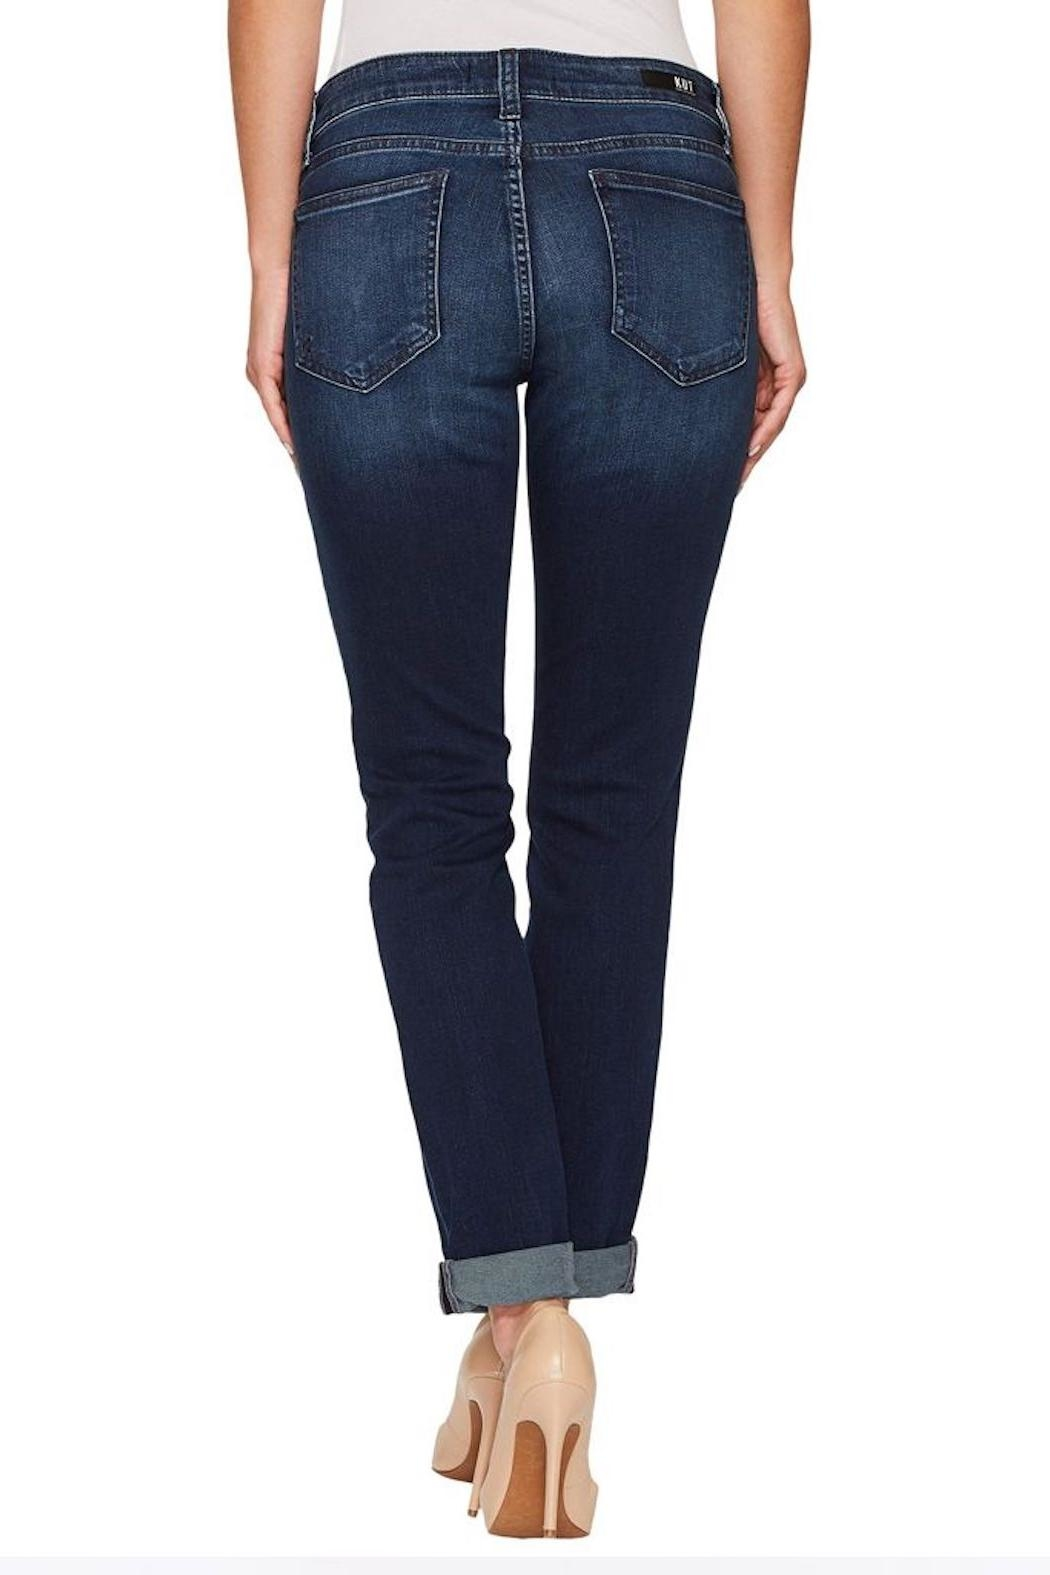 Kut from the Kloth Slouchy Boyfriend Jeans - Front Full Image